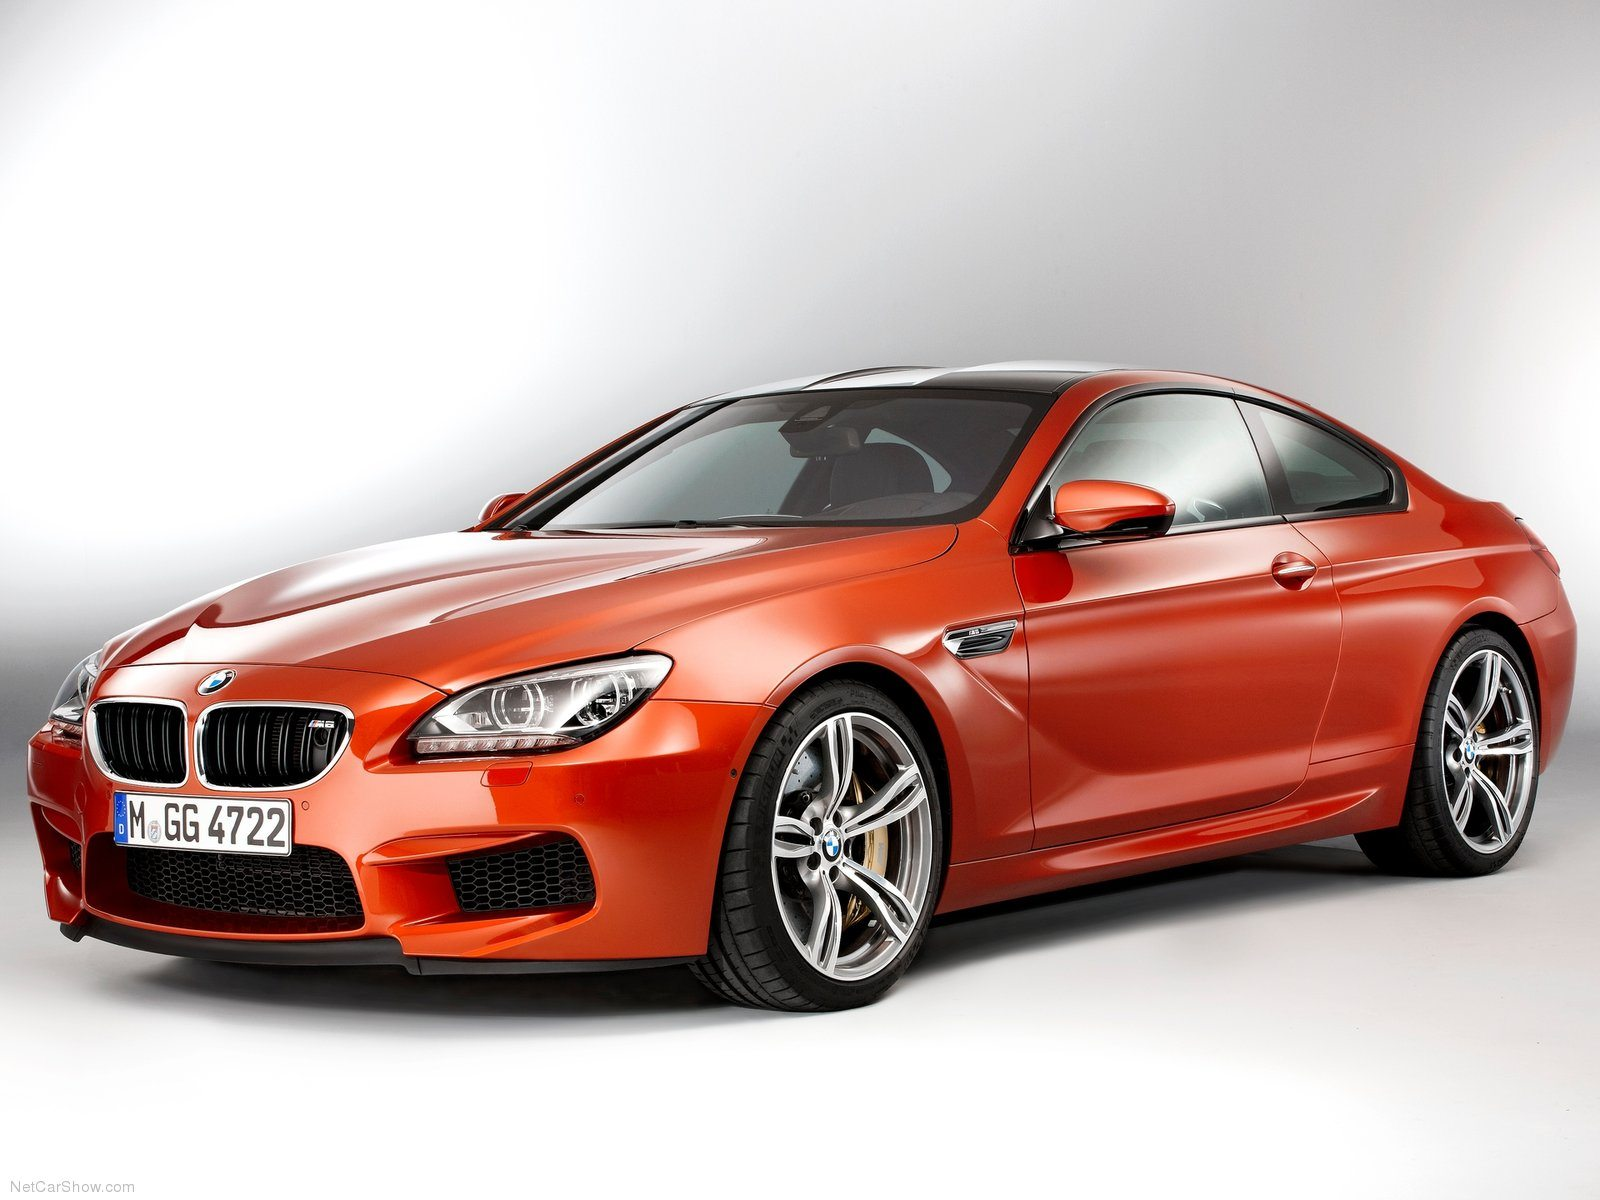 BMW M6 Wallpaper 020